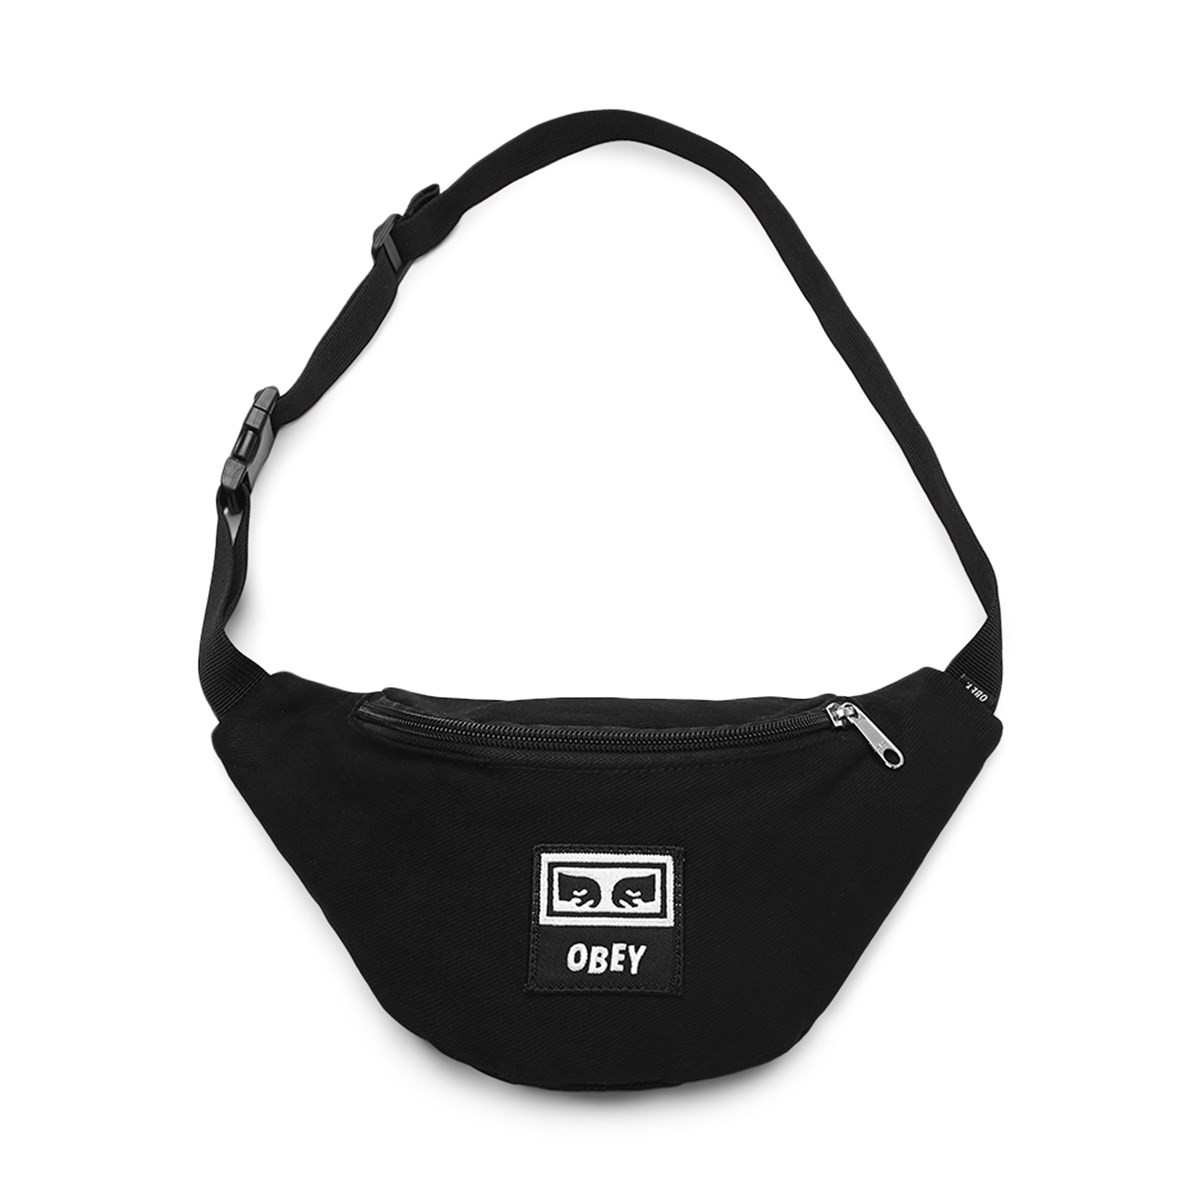 Sac de taille Wasted noir